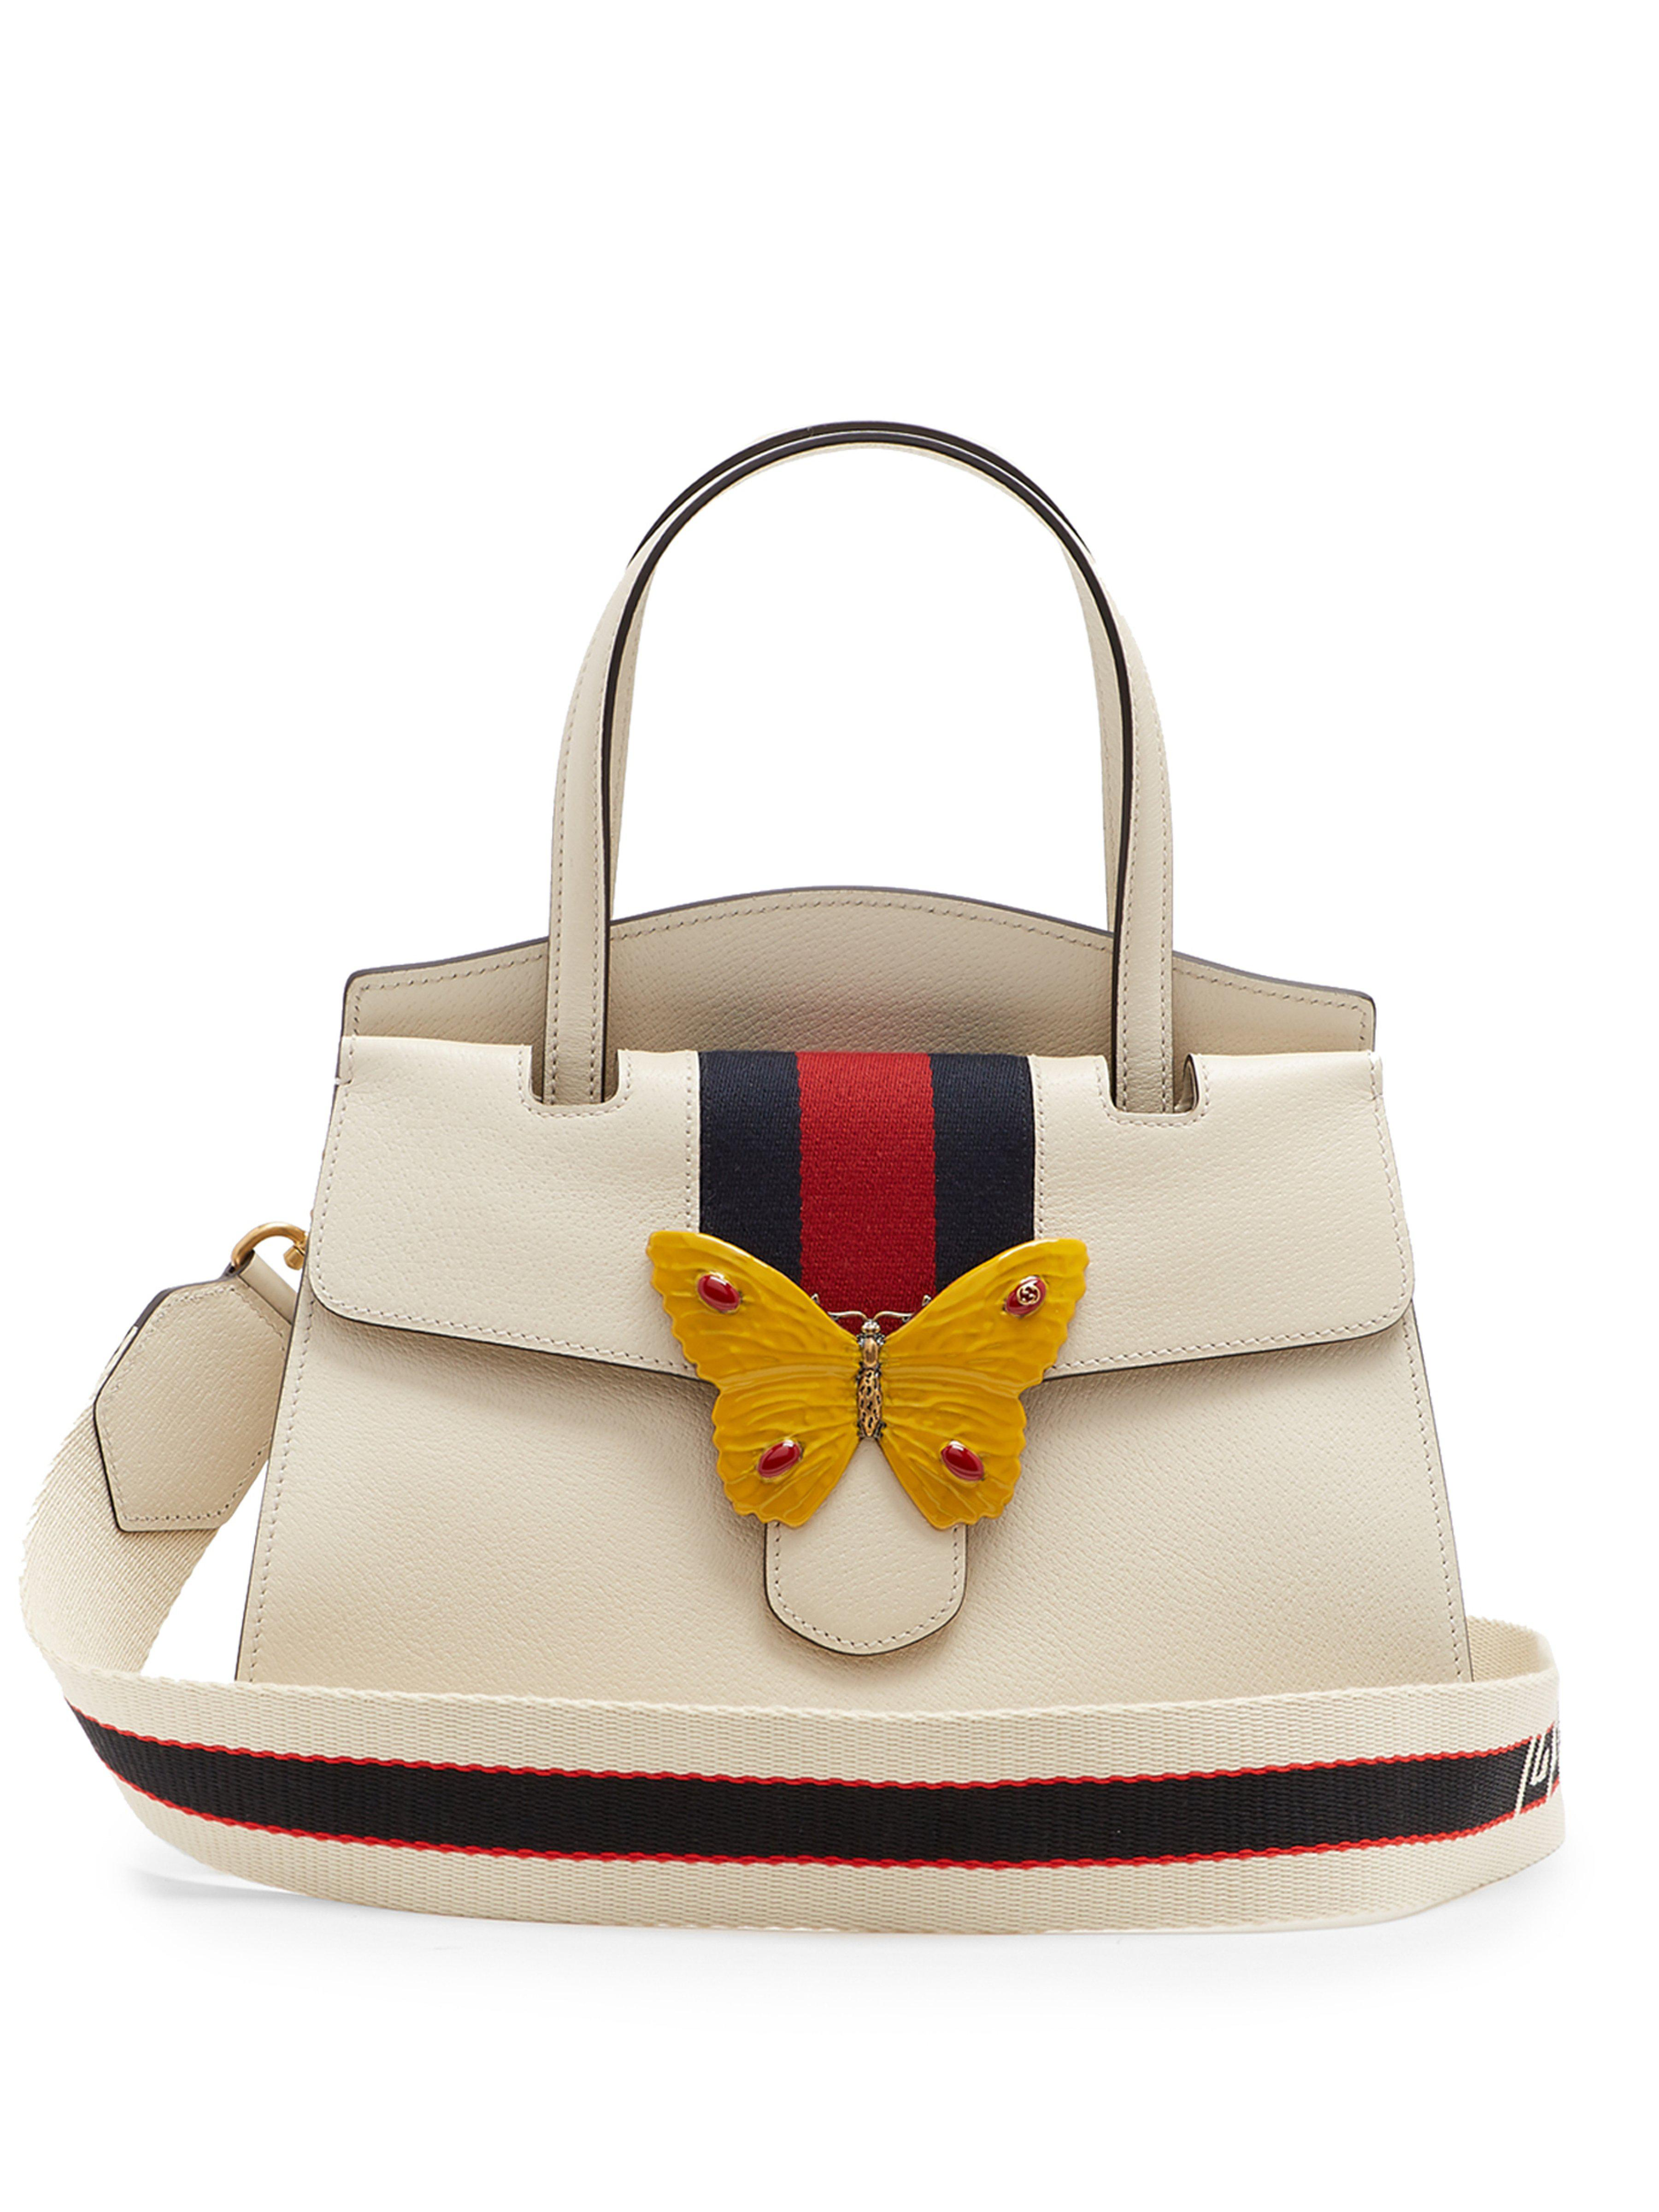 7996f89a8c40 Gucci. Women's Totem Grained Leather Bag